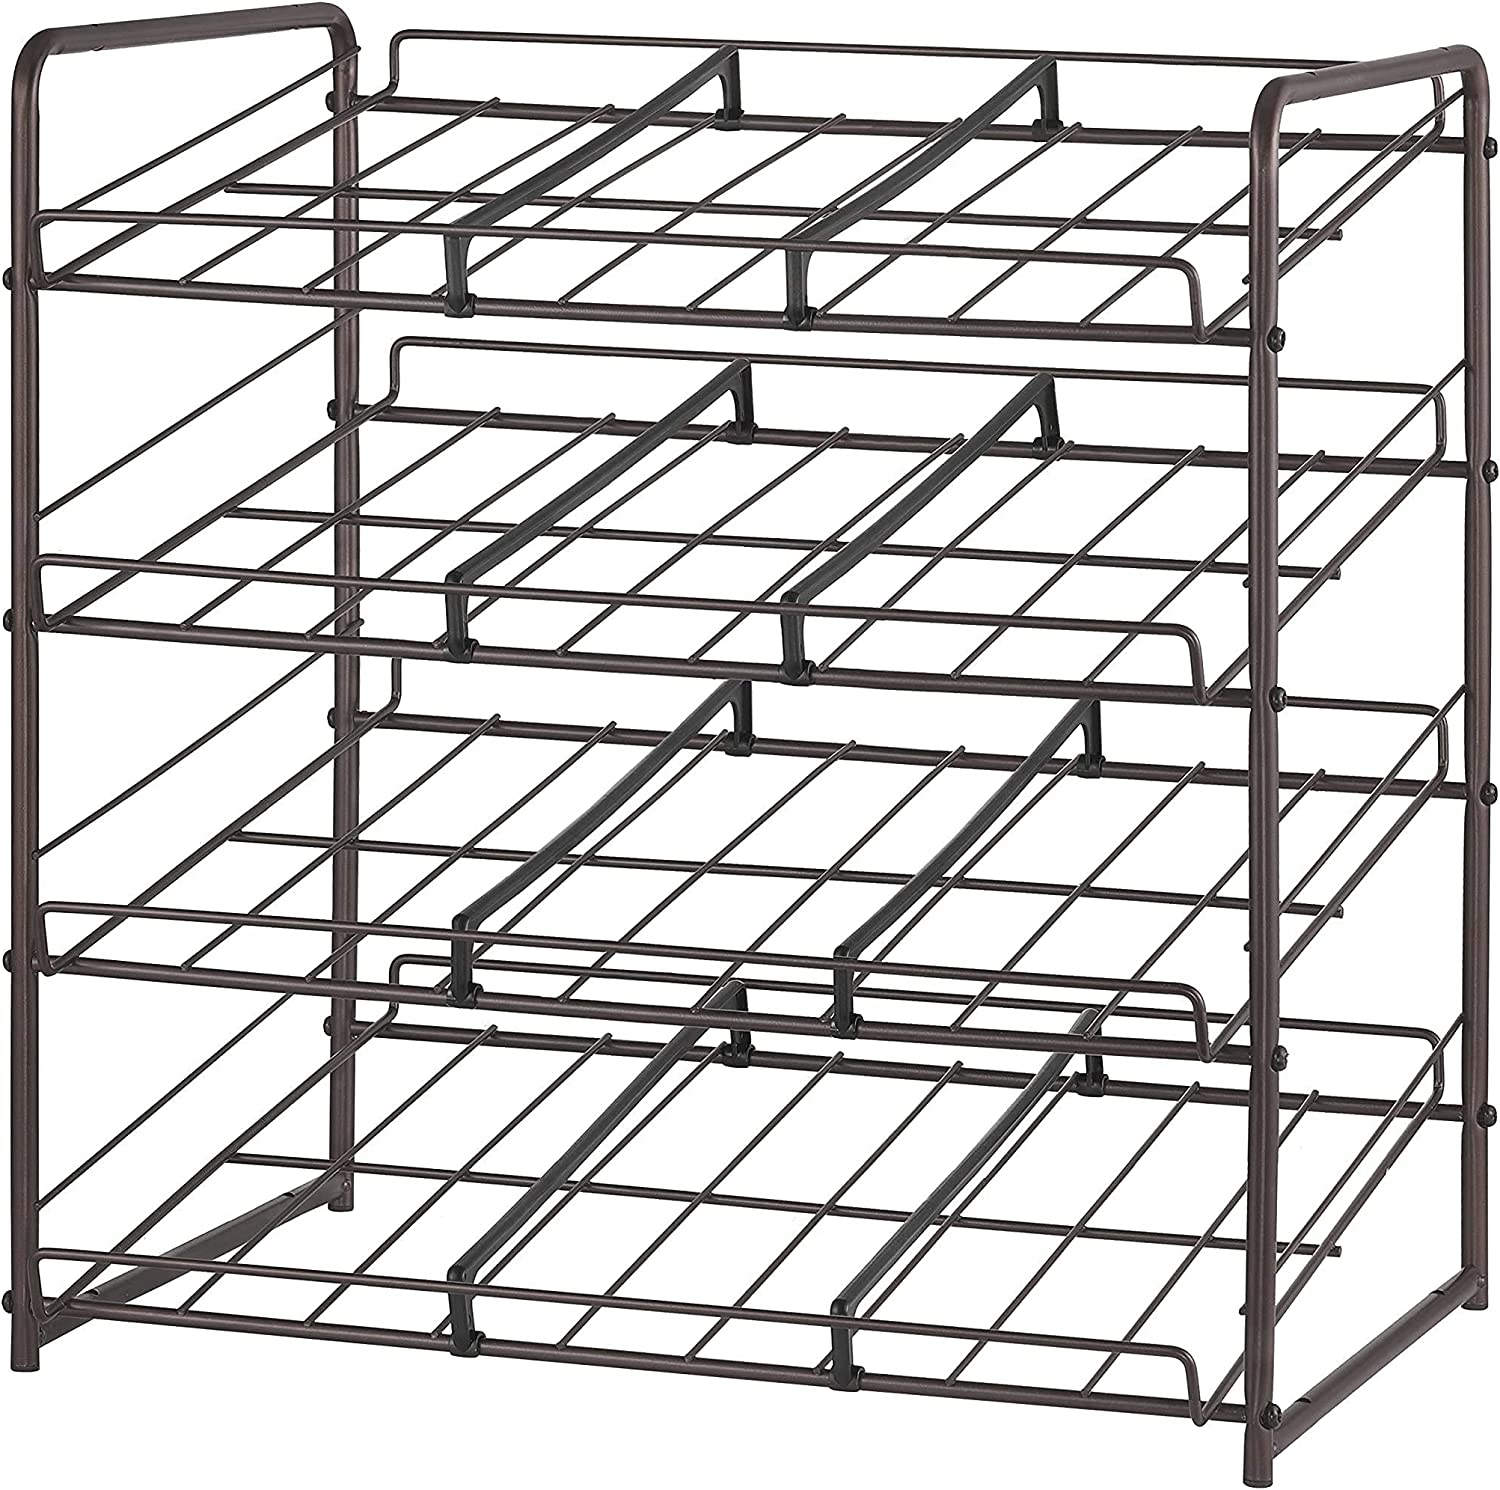 Vontreux Can Rack Organizer, Stackable 4-Tier Can Storage Dispenser for Kitchen Cabinet or Pantry, Bronze